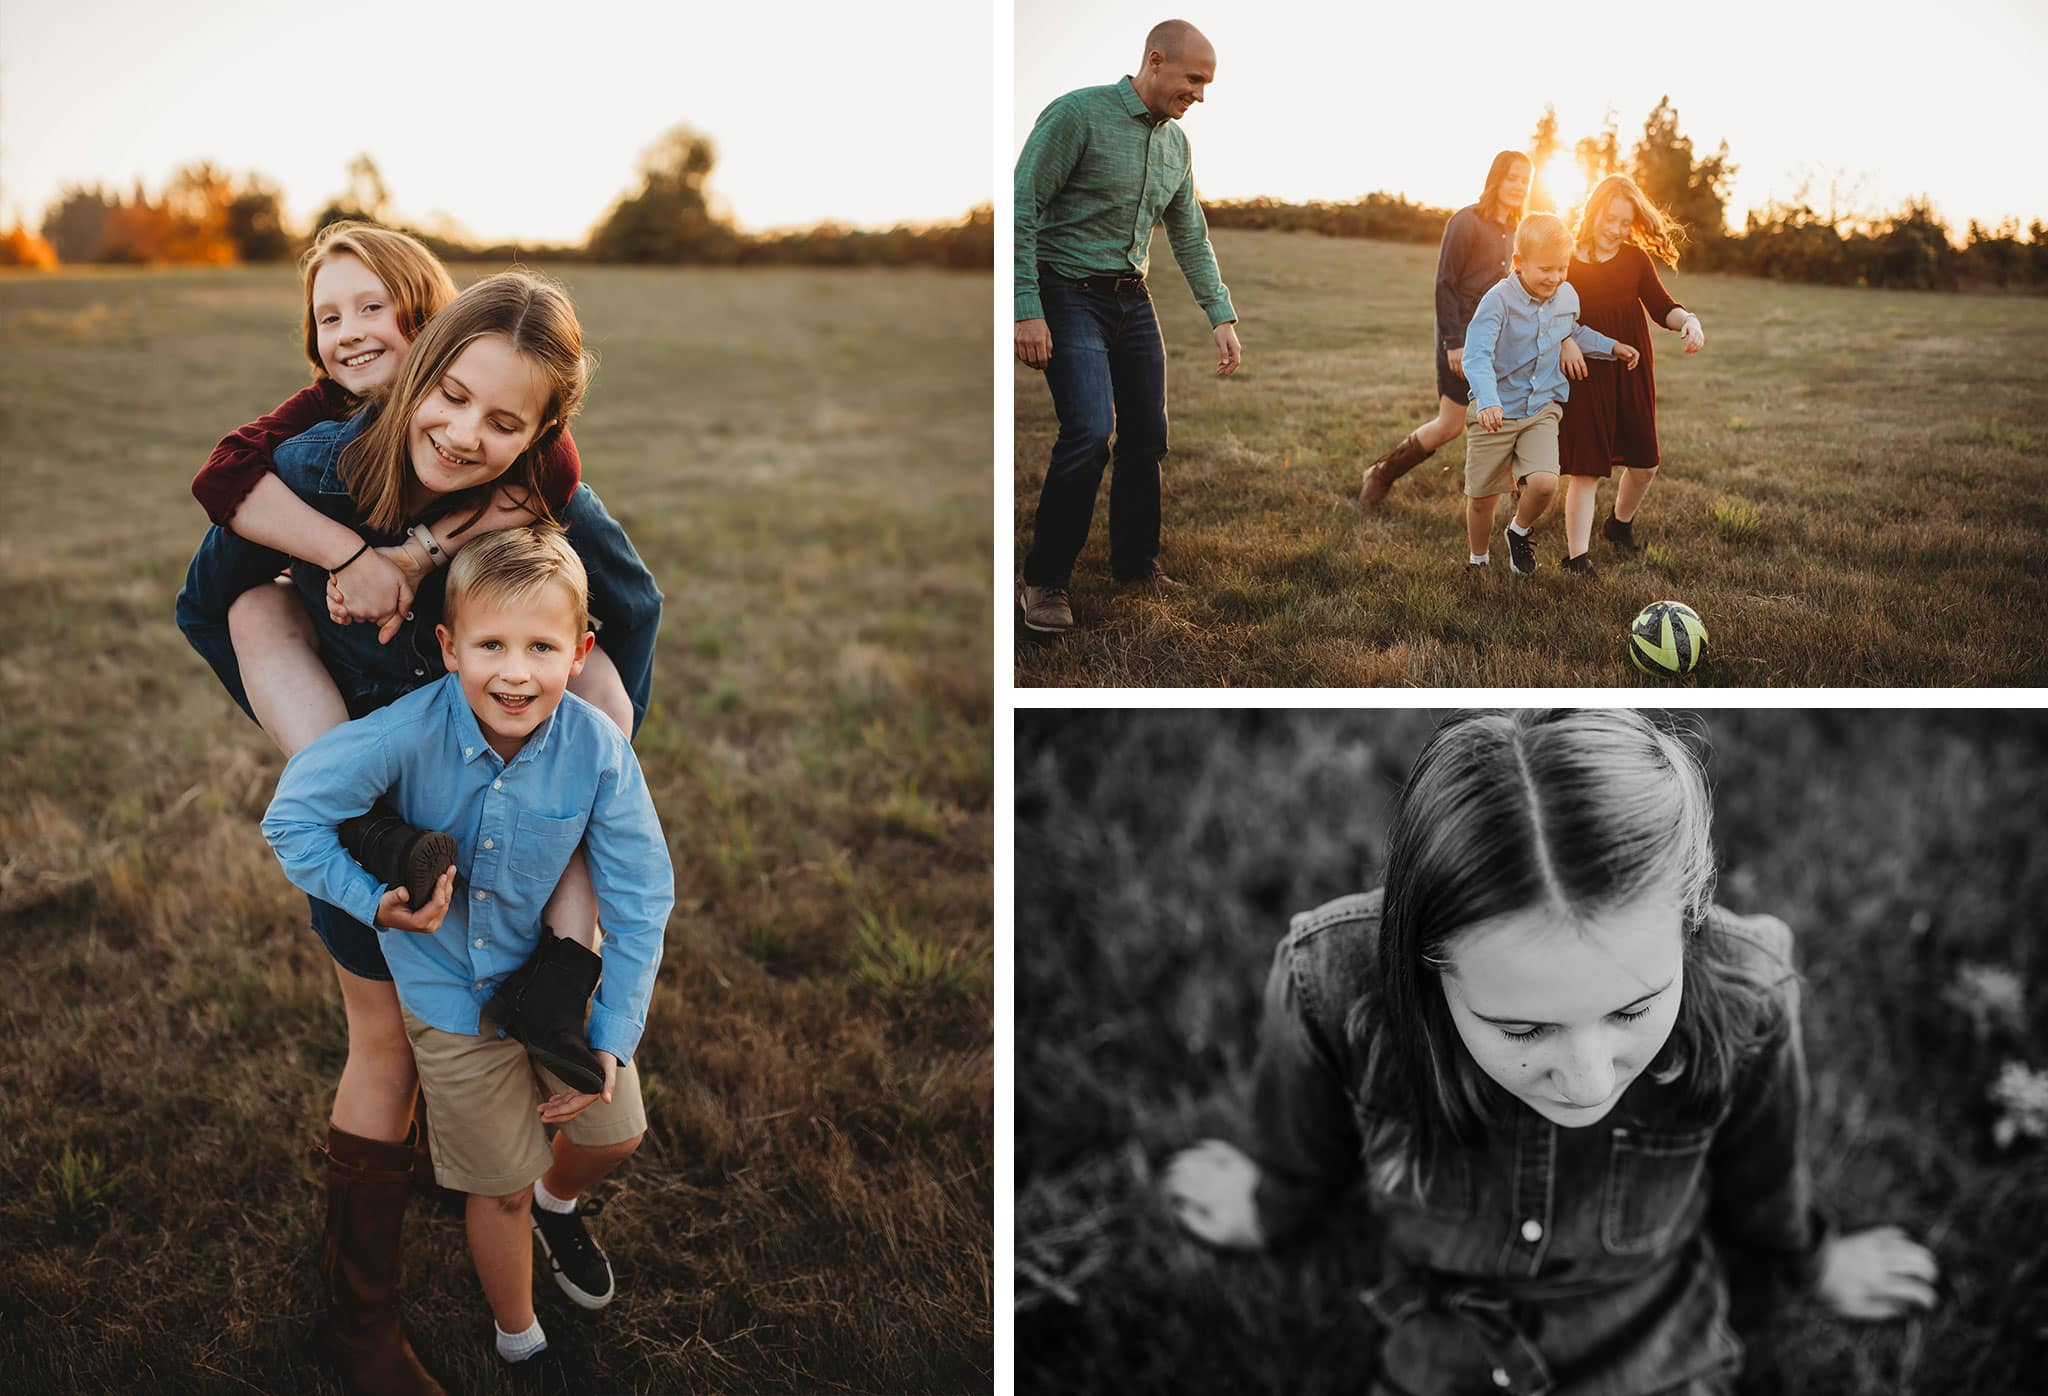 Portland Outdoor Family Photography - Becca Jean Photography